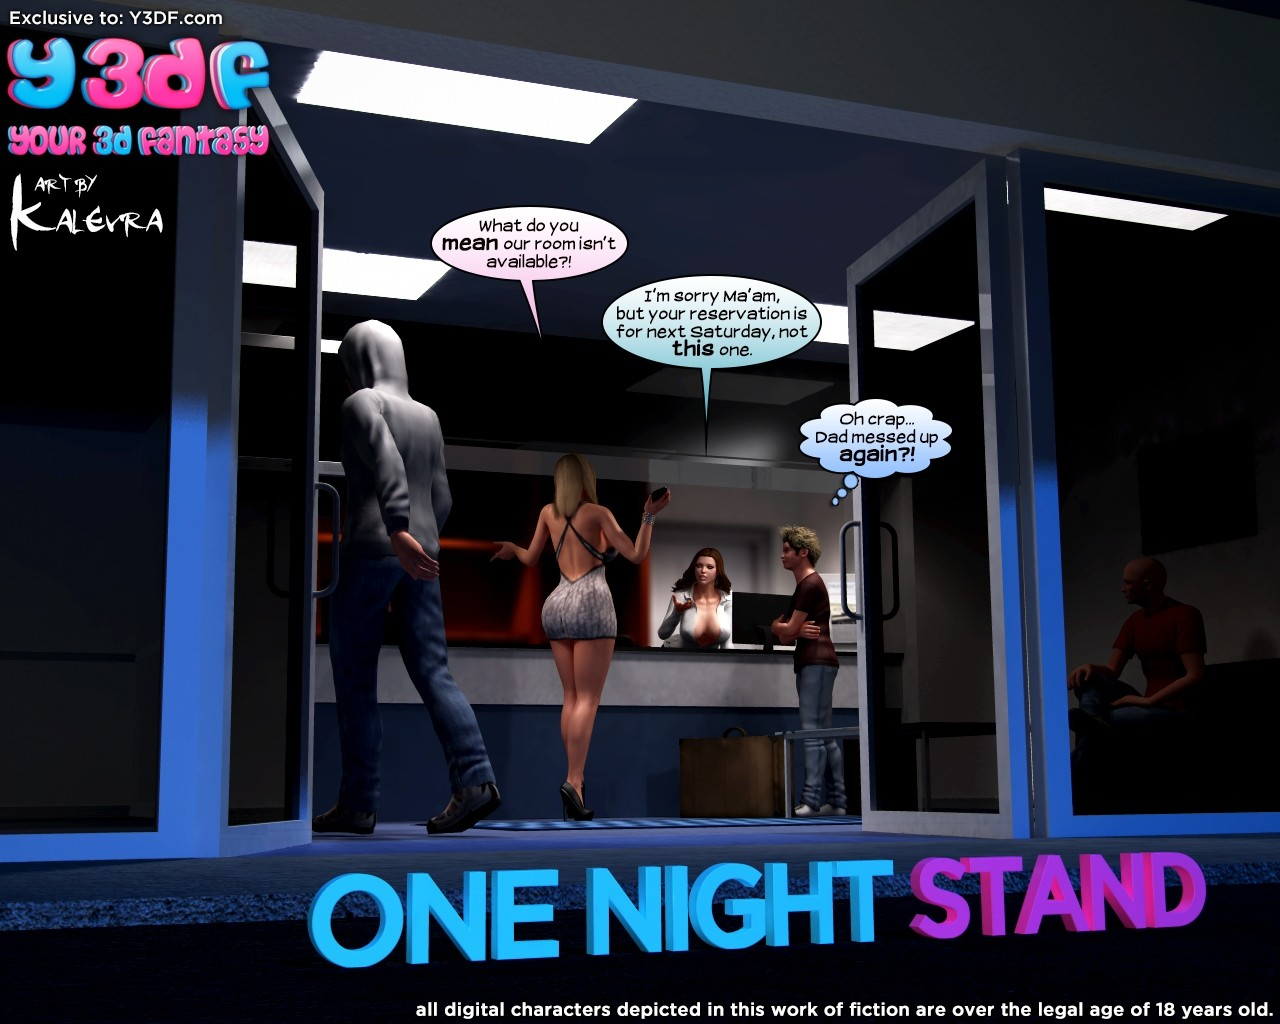 1 4 - One Night Stand.